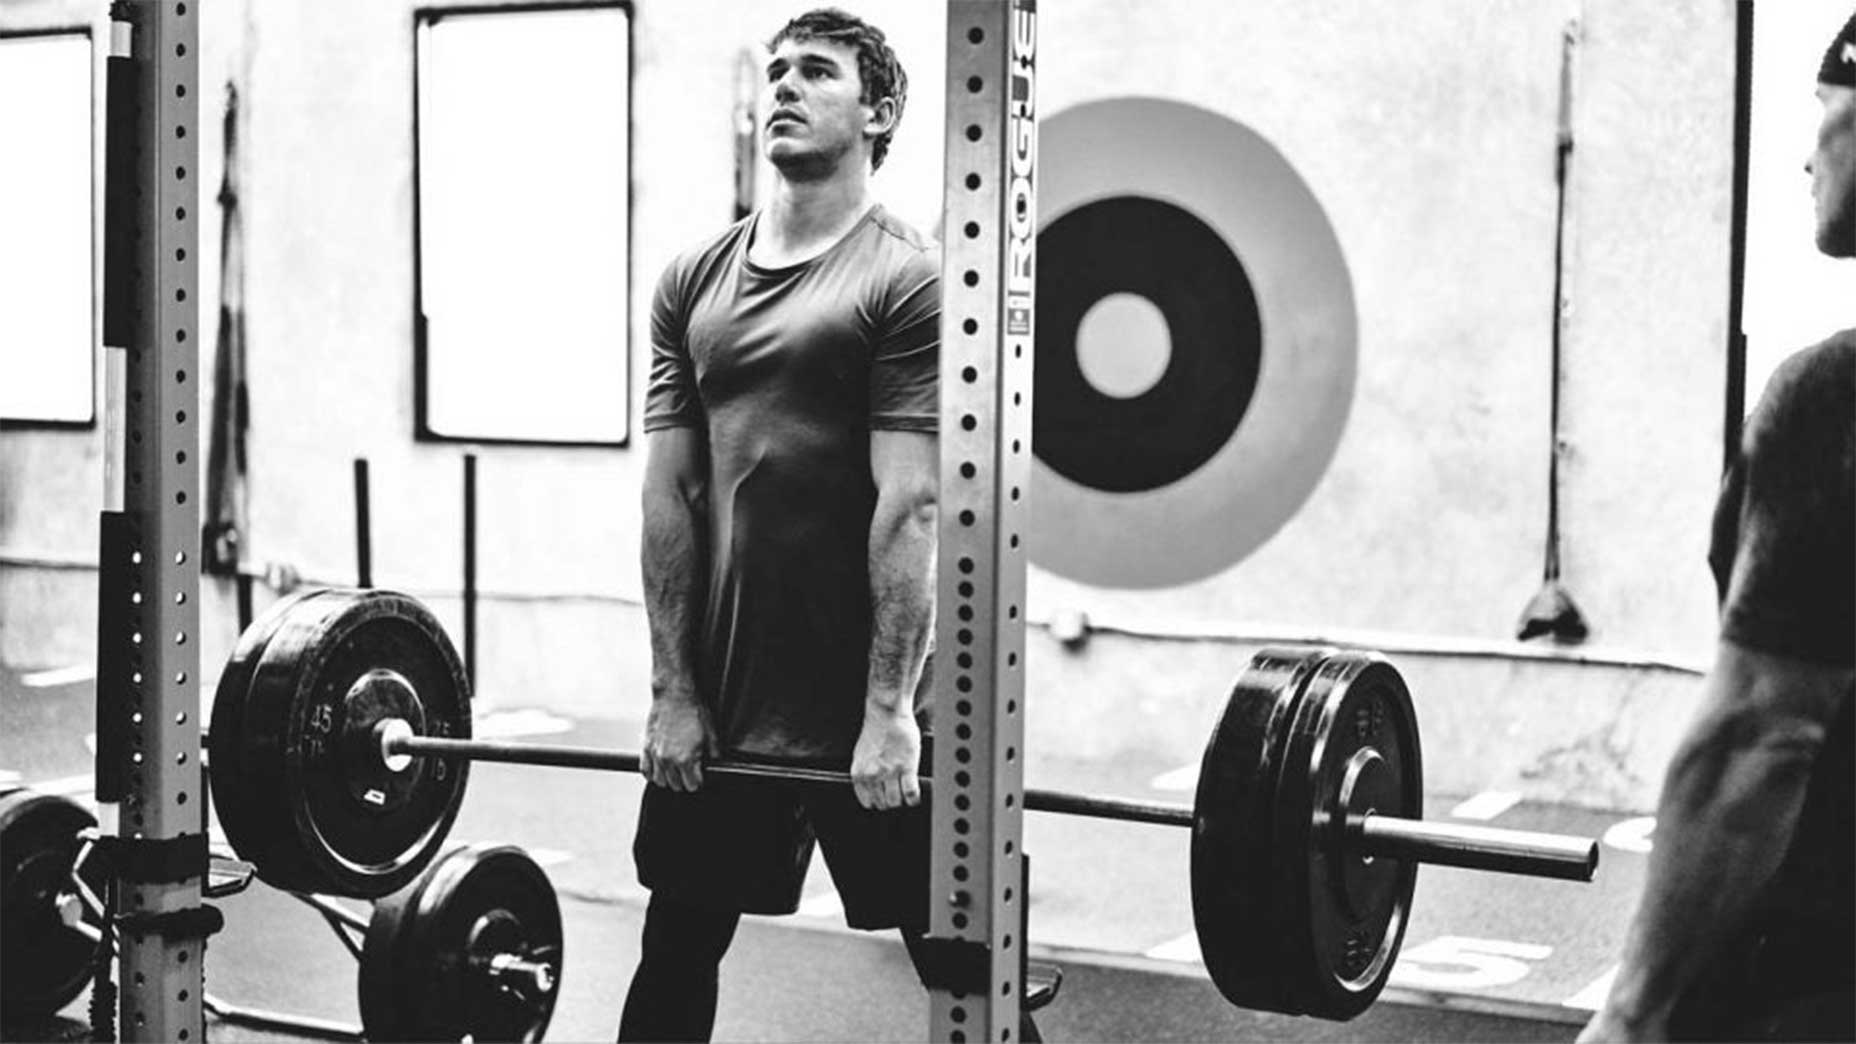 20 for 20: 20 fitness tips that helped you play your best in 2020